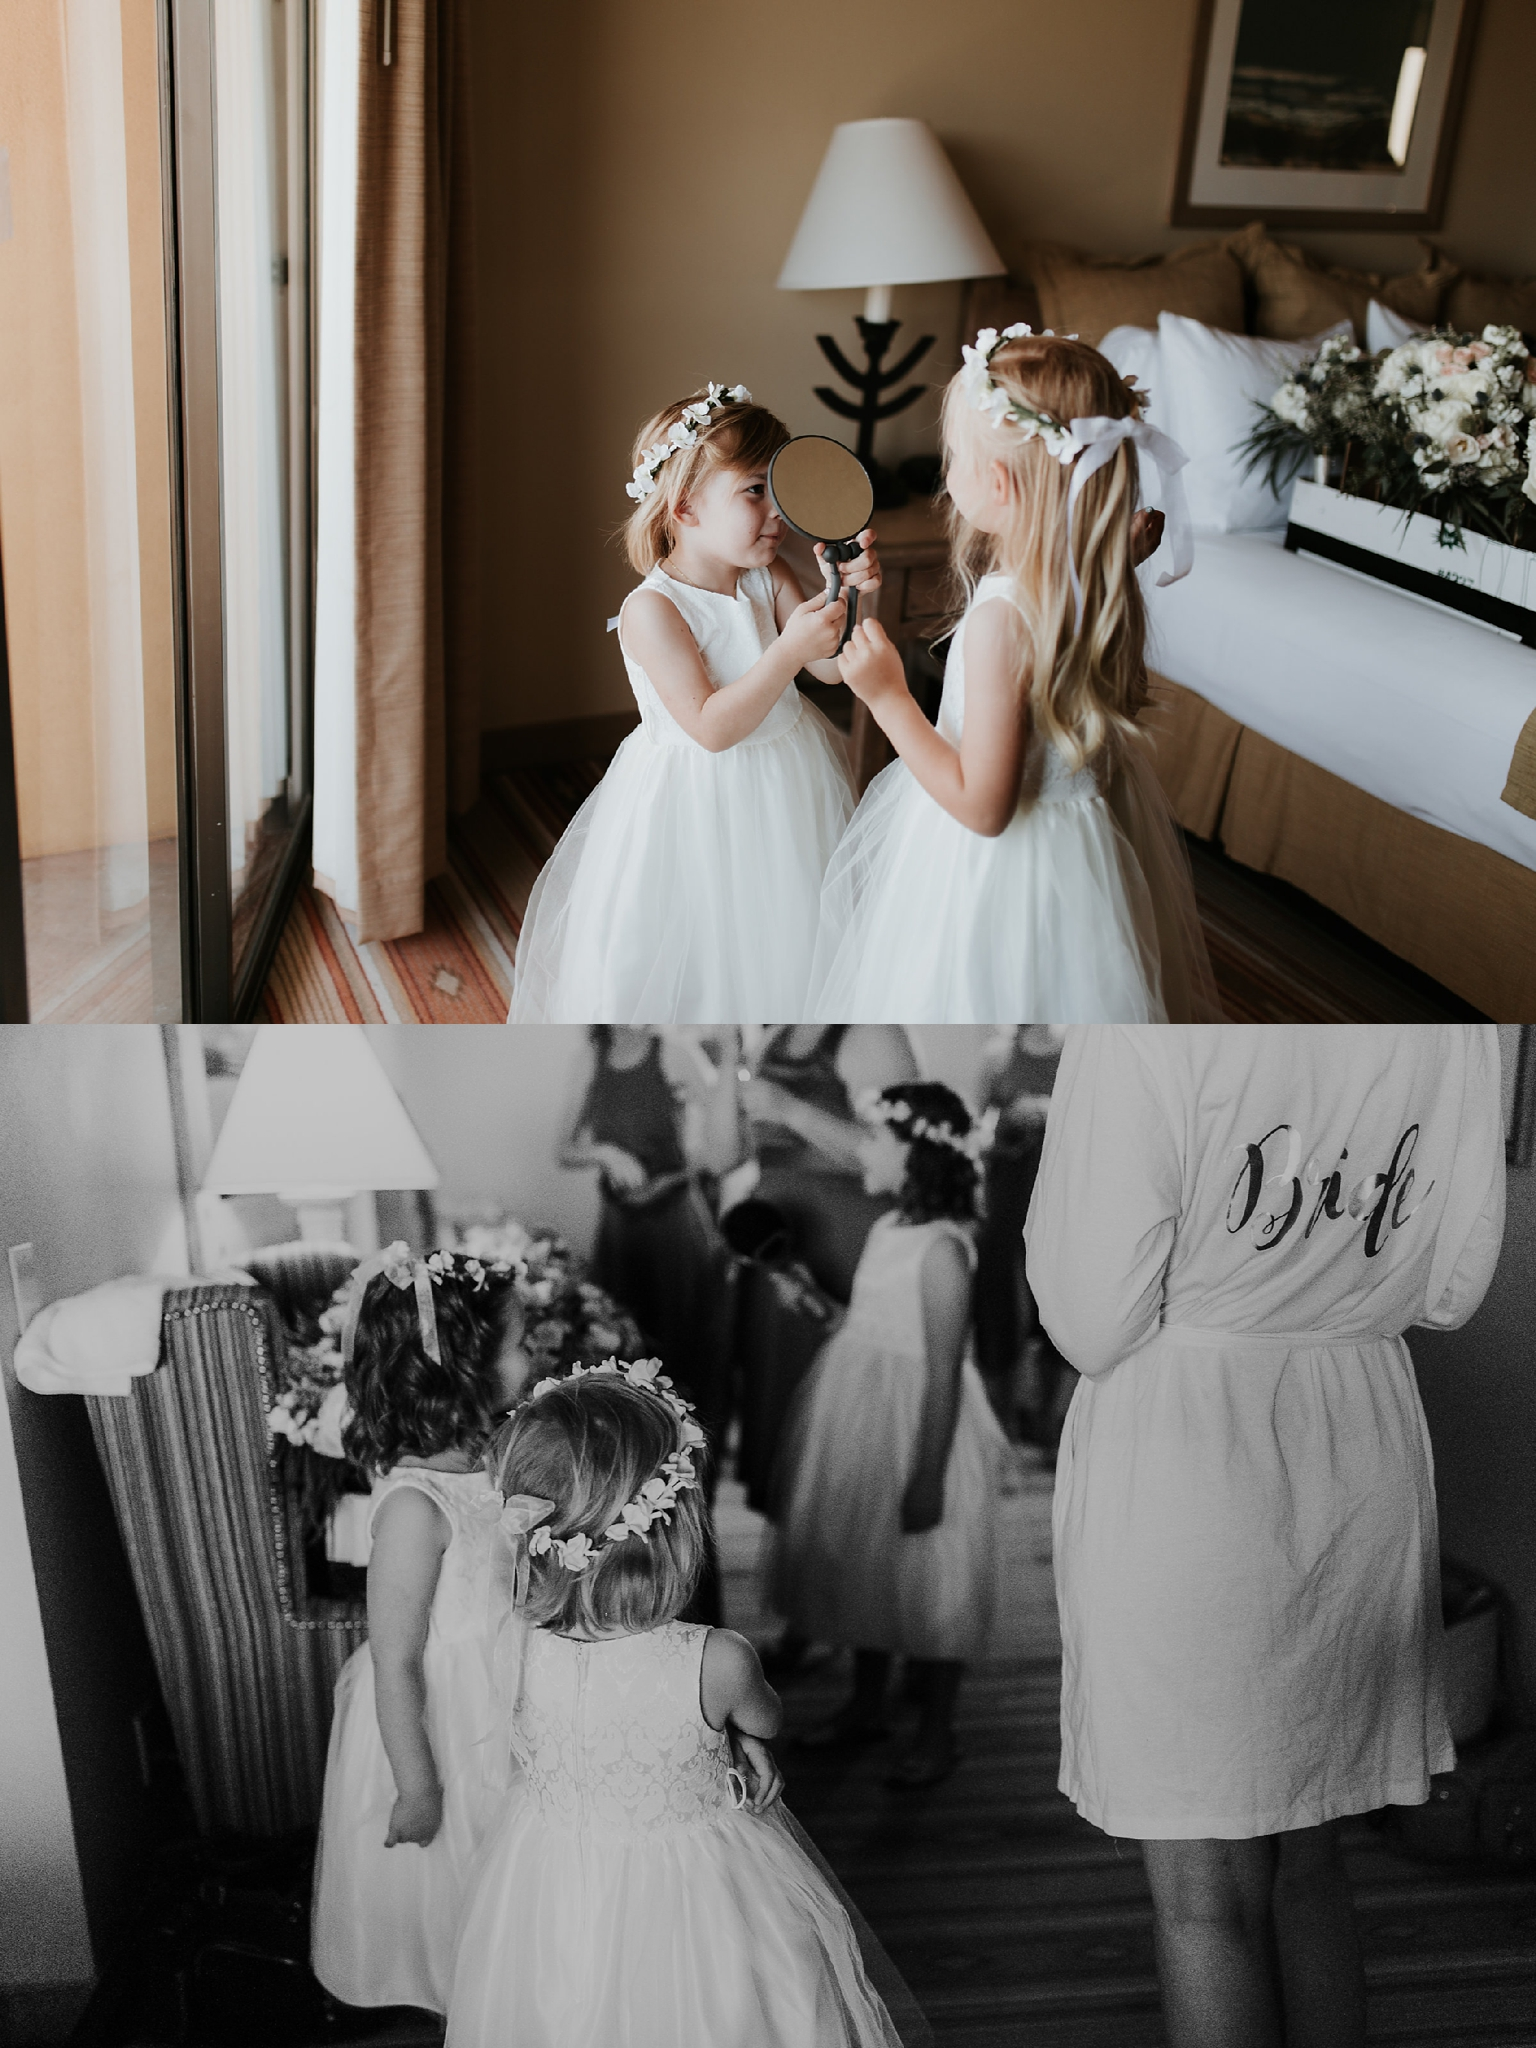 Alicia+lucia+photography+-+albuquerque+wedding+photographer+-+santa+fe+wedding+photography+-+new+mexico+wedding+photographer+-+new+mexico+wedding+-+flower+girl+-+wedding+flower+girl_0043.jpg